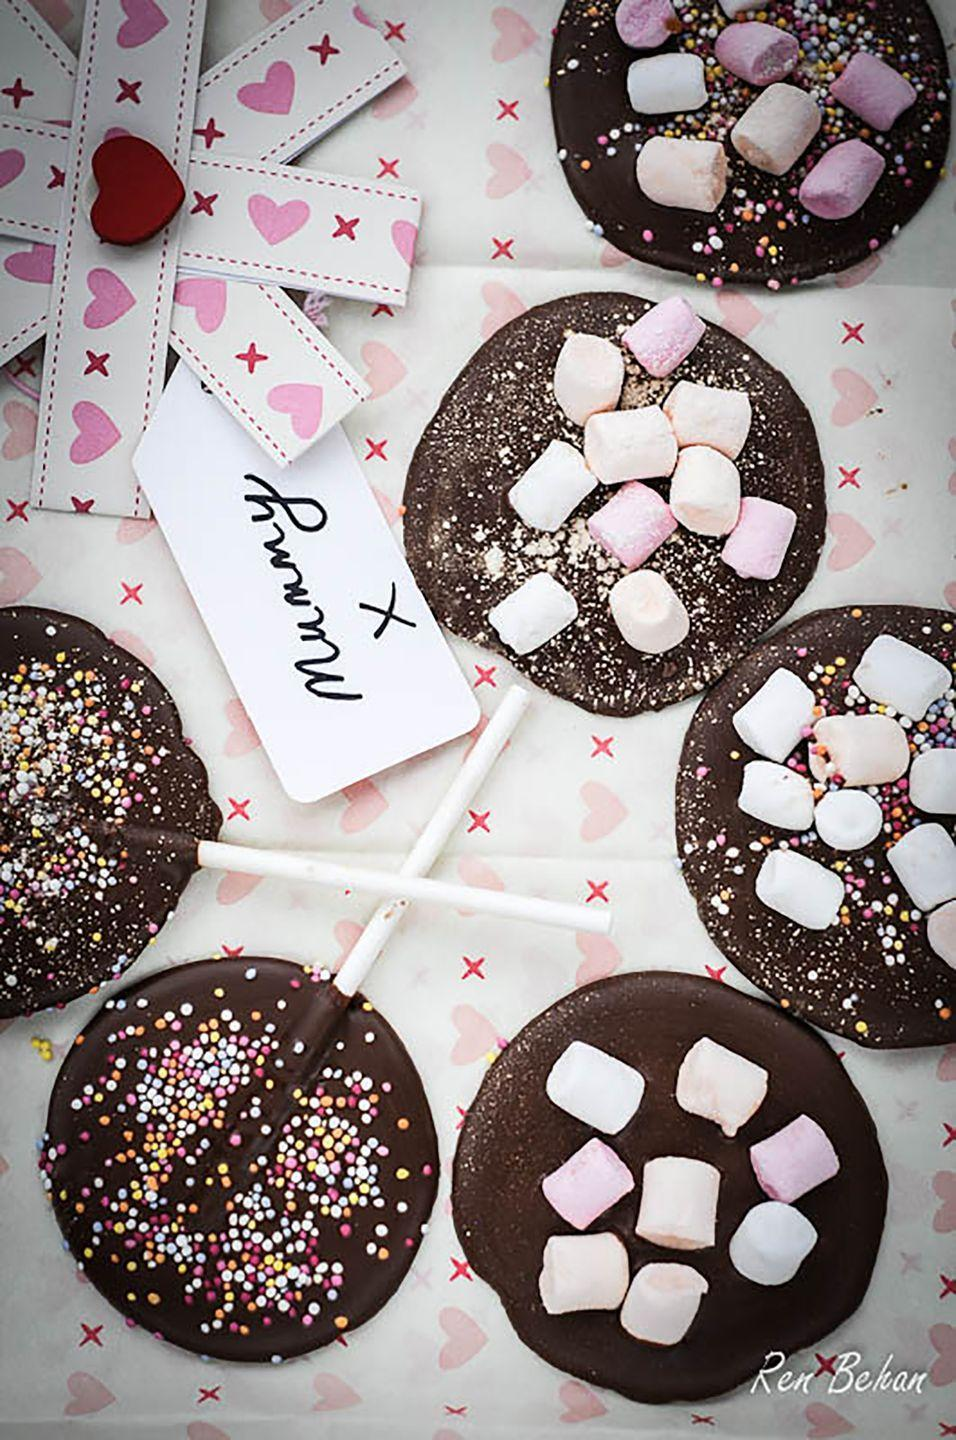 "<p>Chocoholic moms will love munching on these decadent treats, which you can decorate with marshmallows, sprinkles, or a candy of your choice.</p><p><strong>Get the recipe at <a href=""http://www.renbehan.com/2013/03/homemade-mothers-day-chocolates-that-dads-can-help-with.html"" rel=""nofollow noopener"" target=""_blank"" data-ylk=""slk:Ren Behan"" class=""link rapid-noclick-resp"">Ren Behan</a>.</strong></p>"